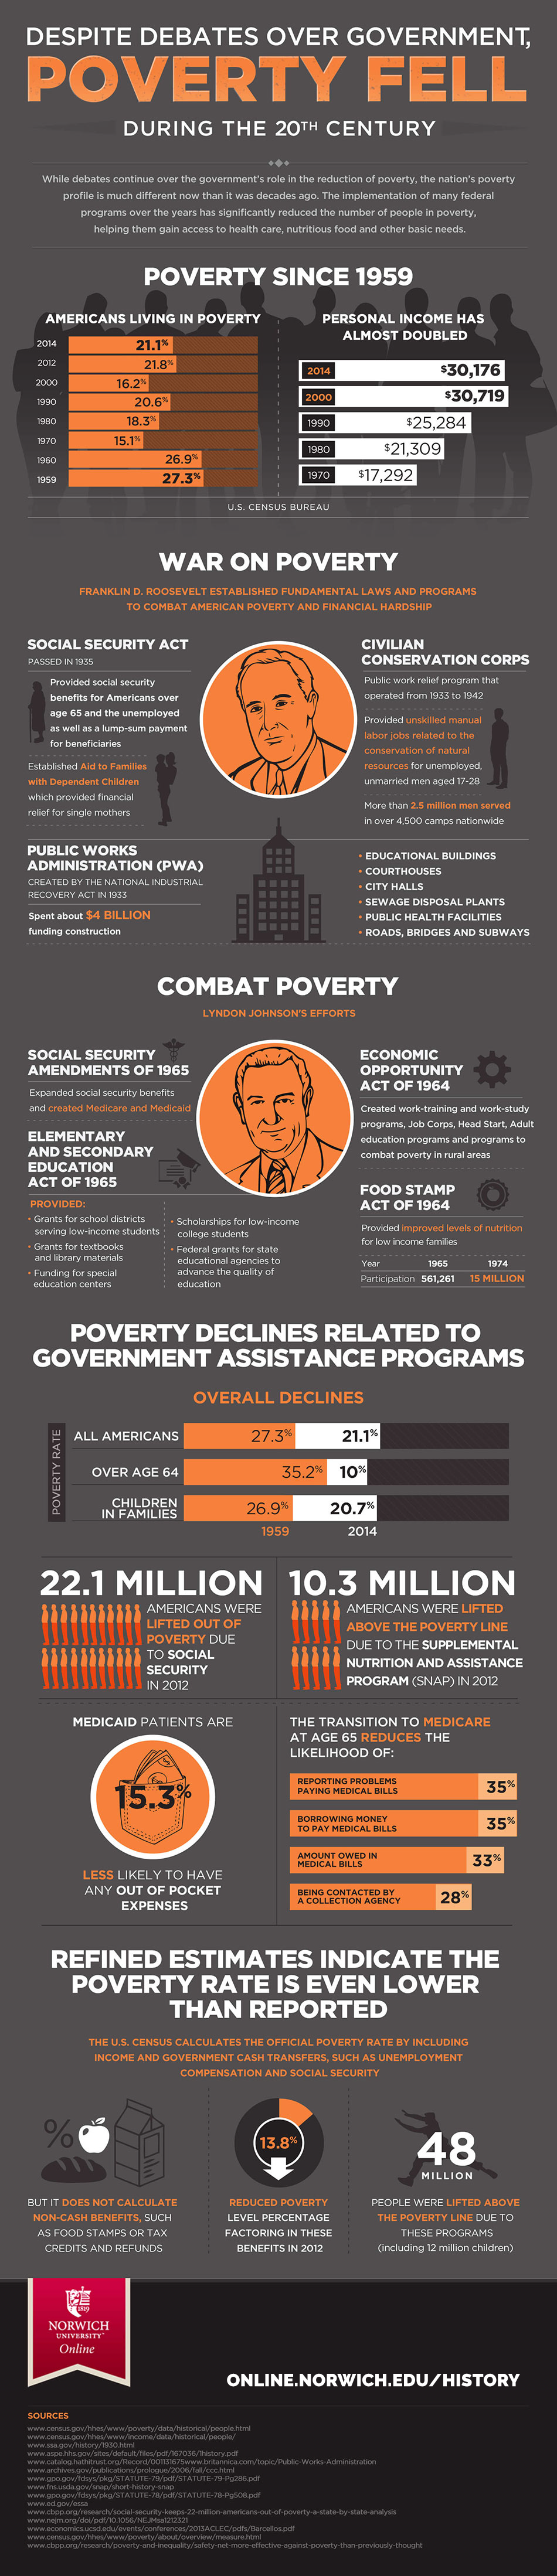 infographic on poverty decline in the 20th century